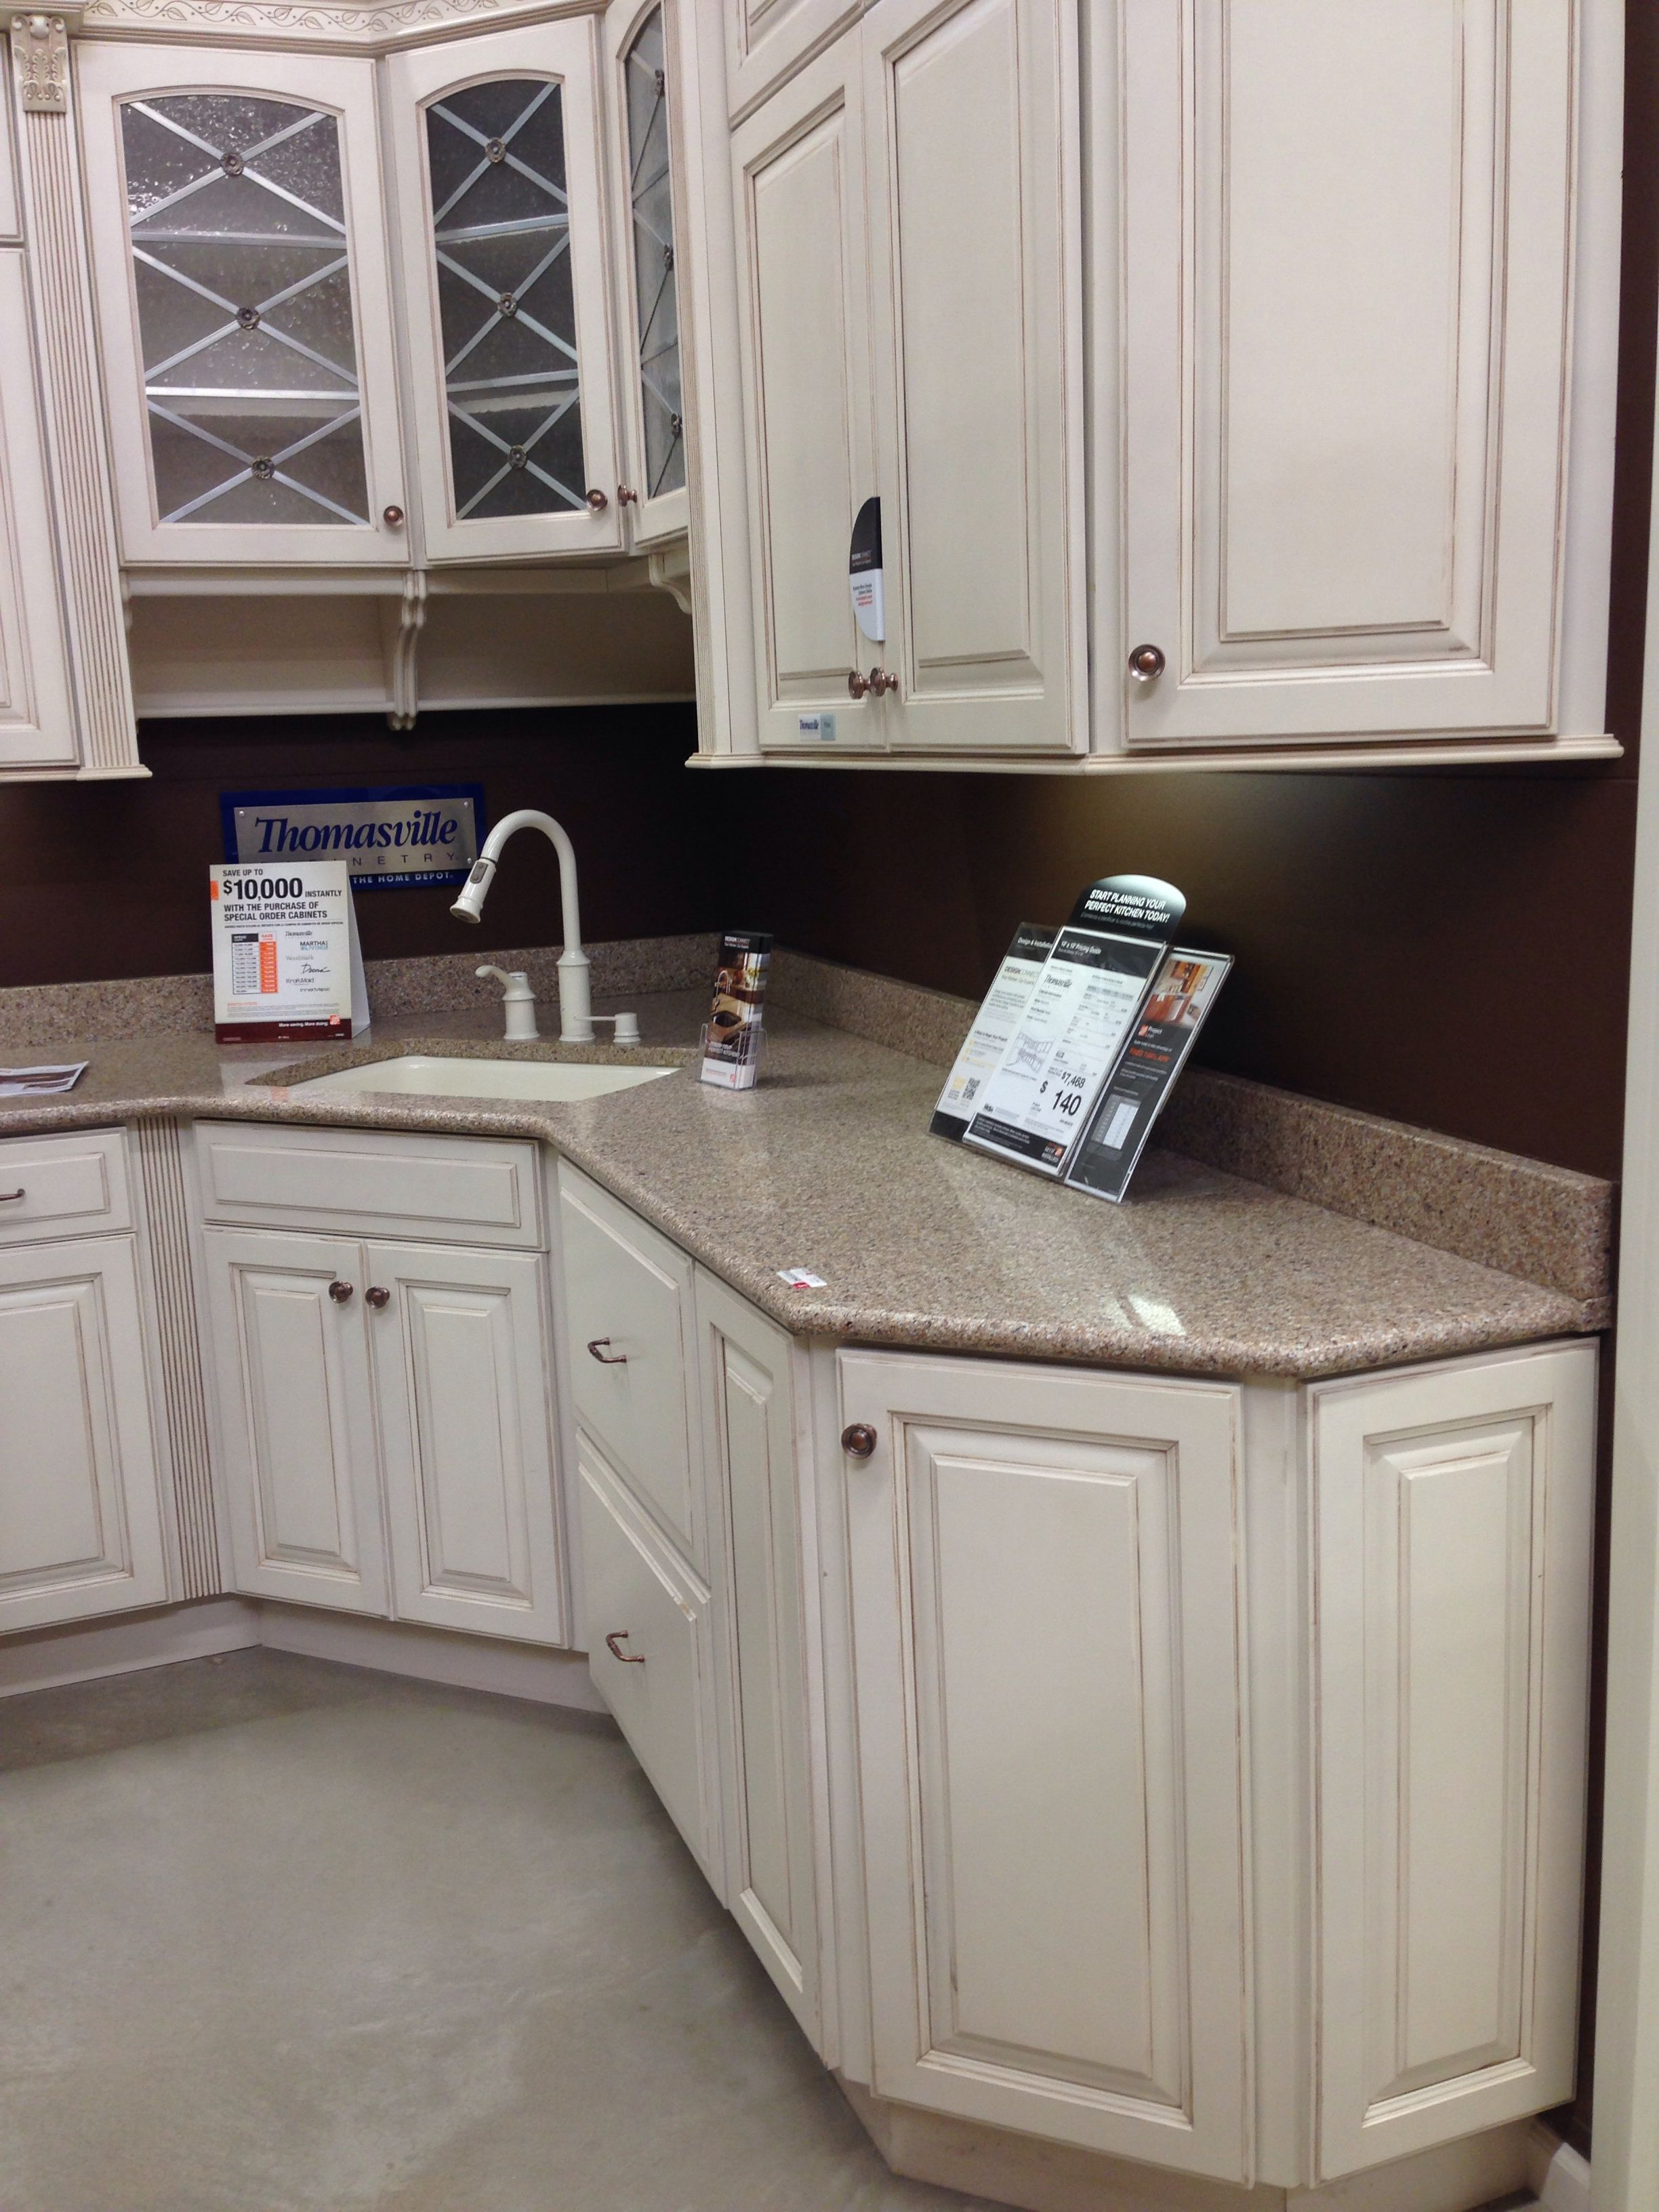 Update Kitchen Maple Cabinets Plaza Maple Cabinet With Kona Beige Silestone Countertop